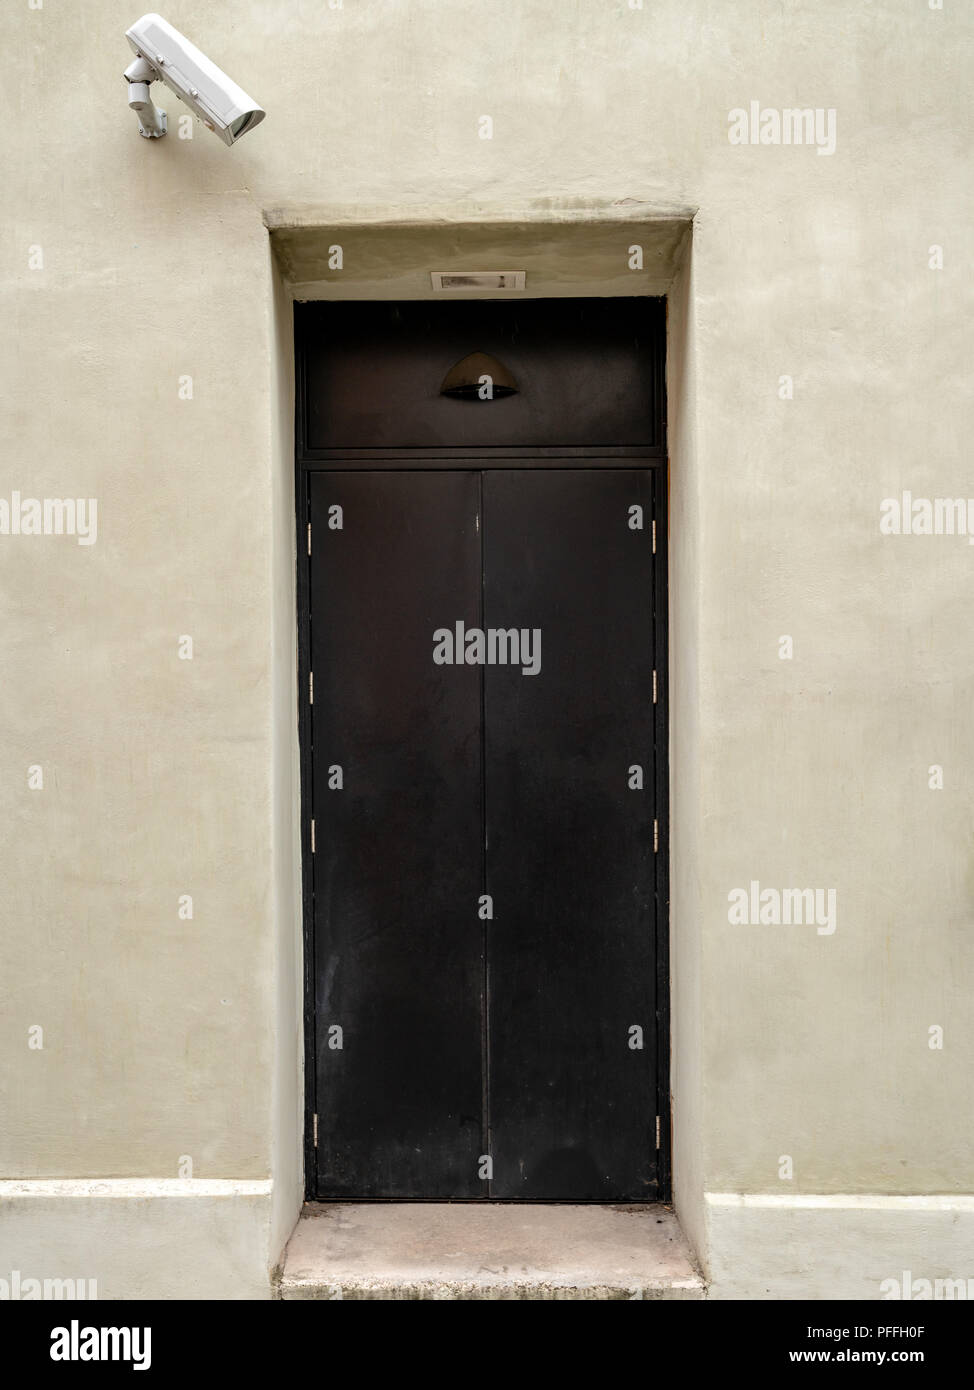 A door with a security camera, seen in Shrewsbury, Shropshire, England, UK - Stock Image